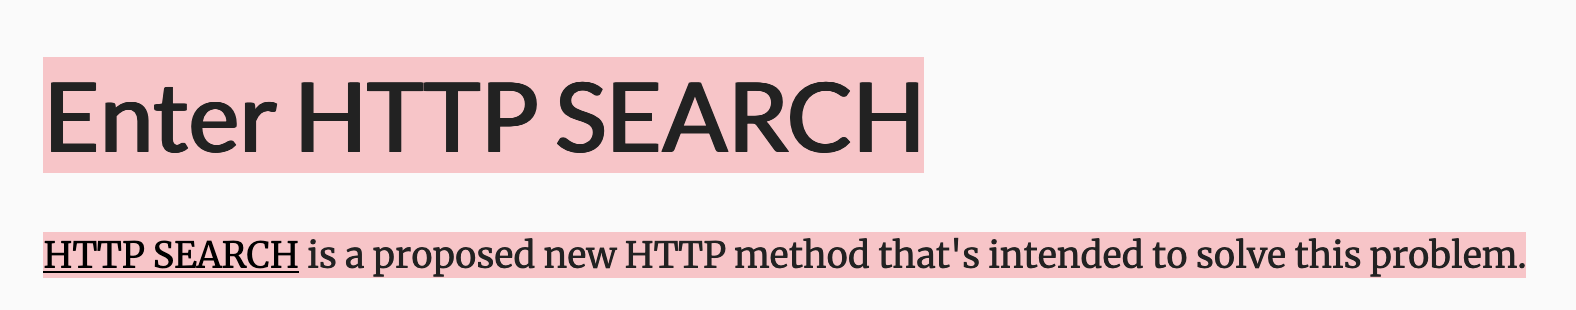 Enter HTTP search – A proposed new HTTP method that's intended to solve this problem.